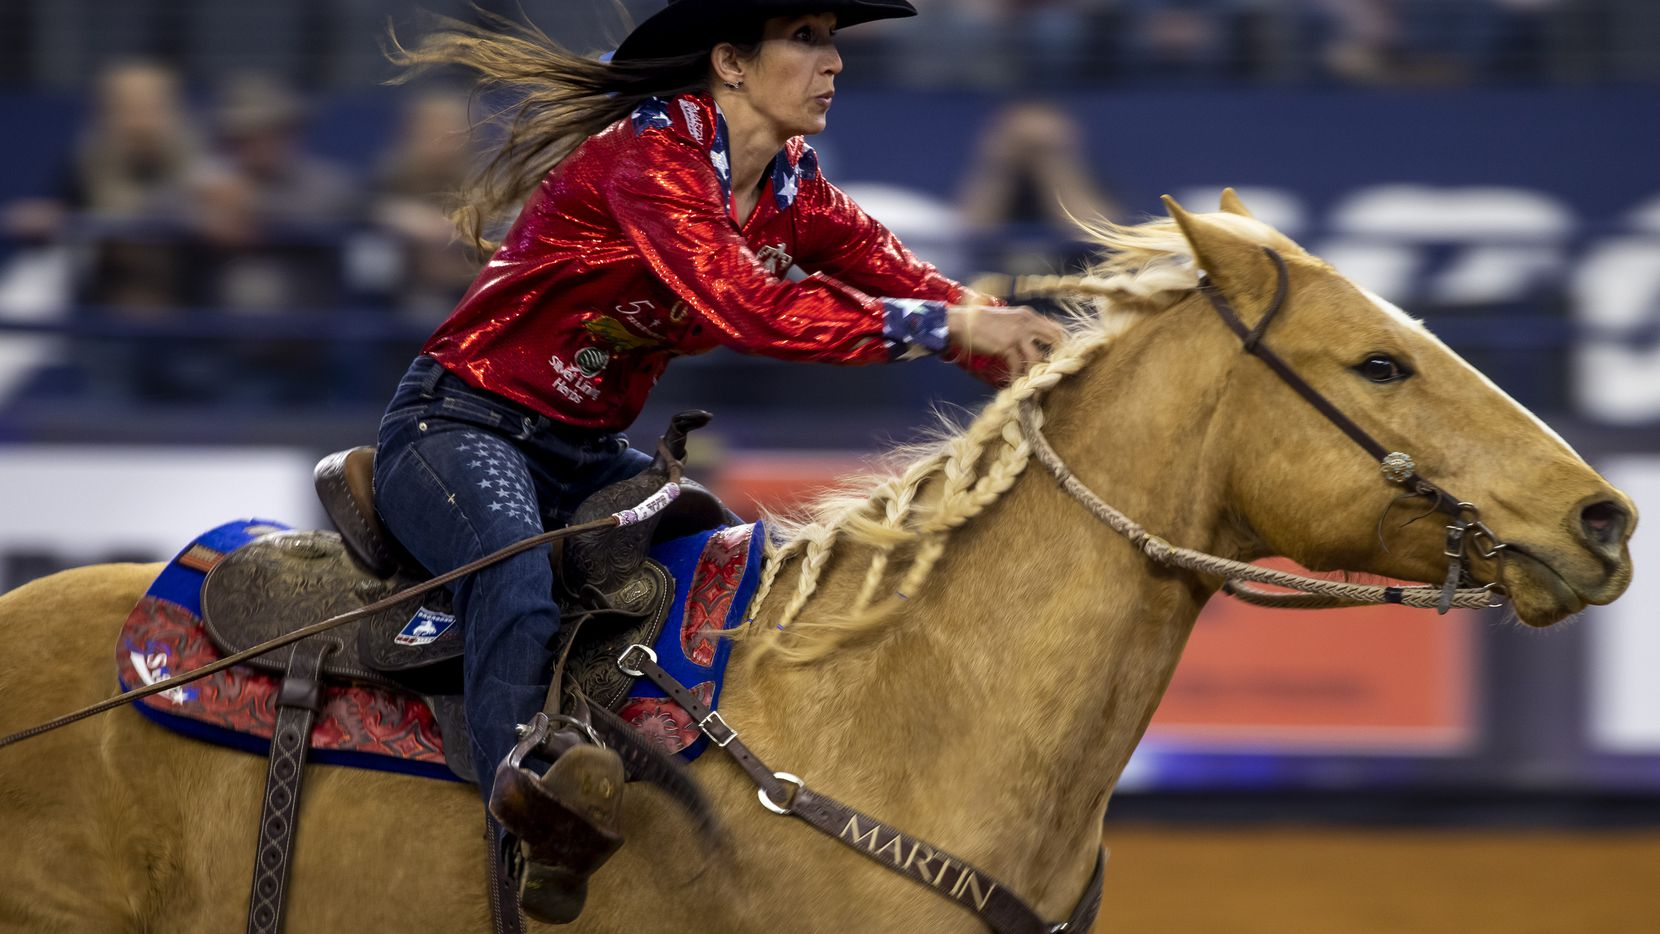 A rodeo rider competes in barrel racing.